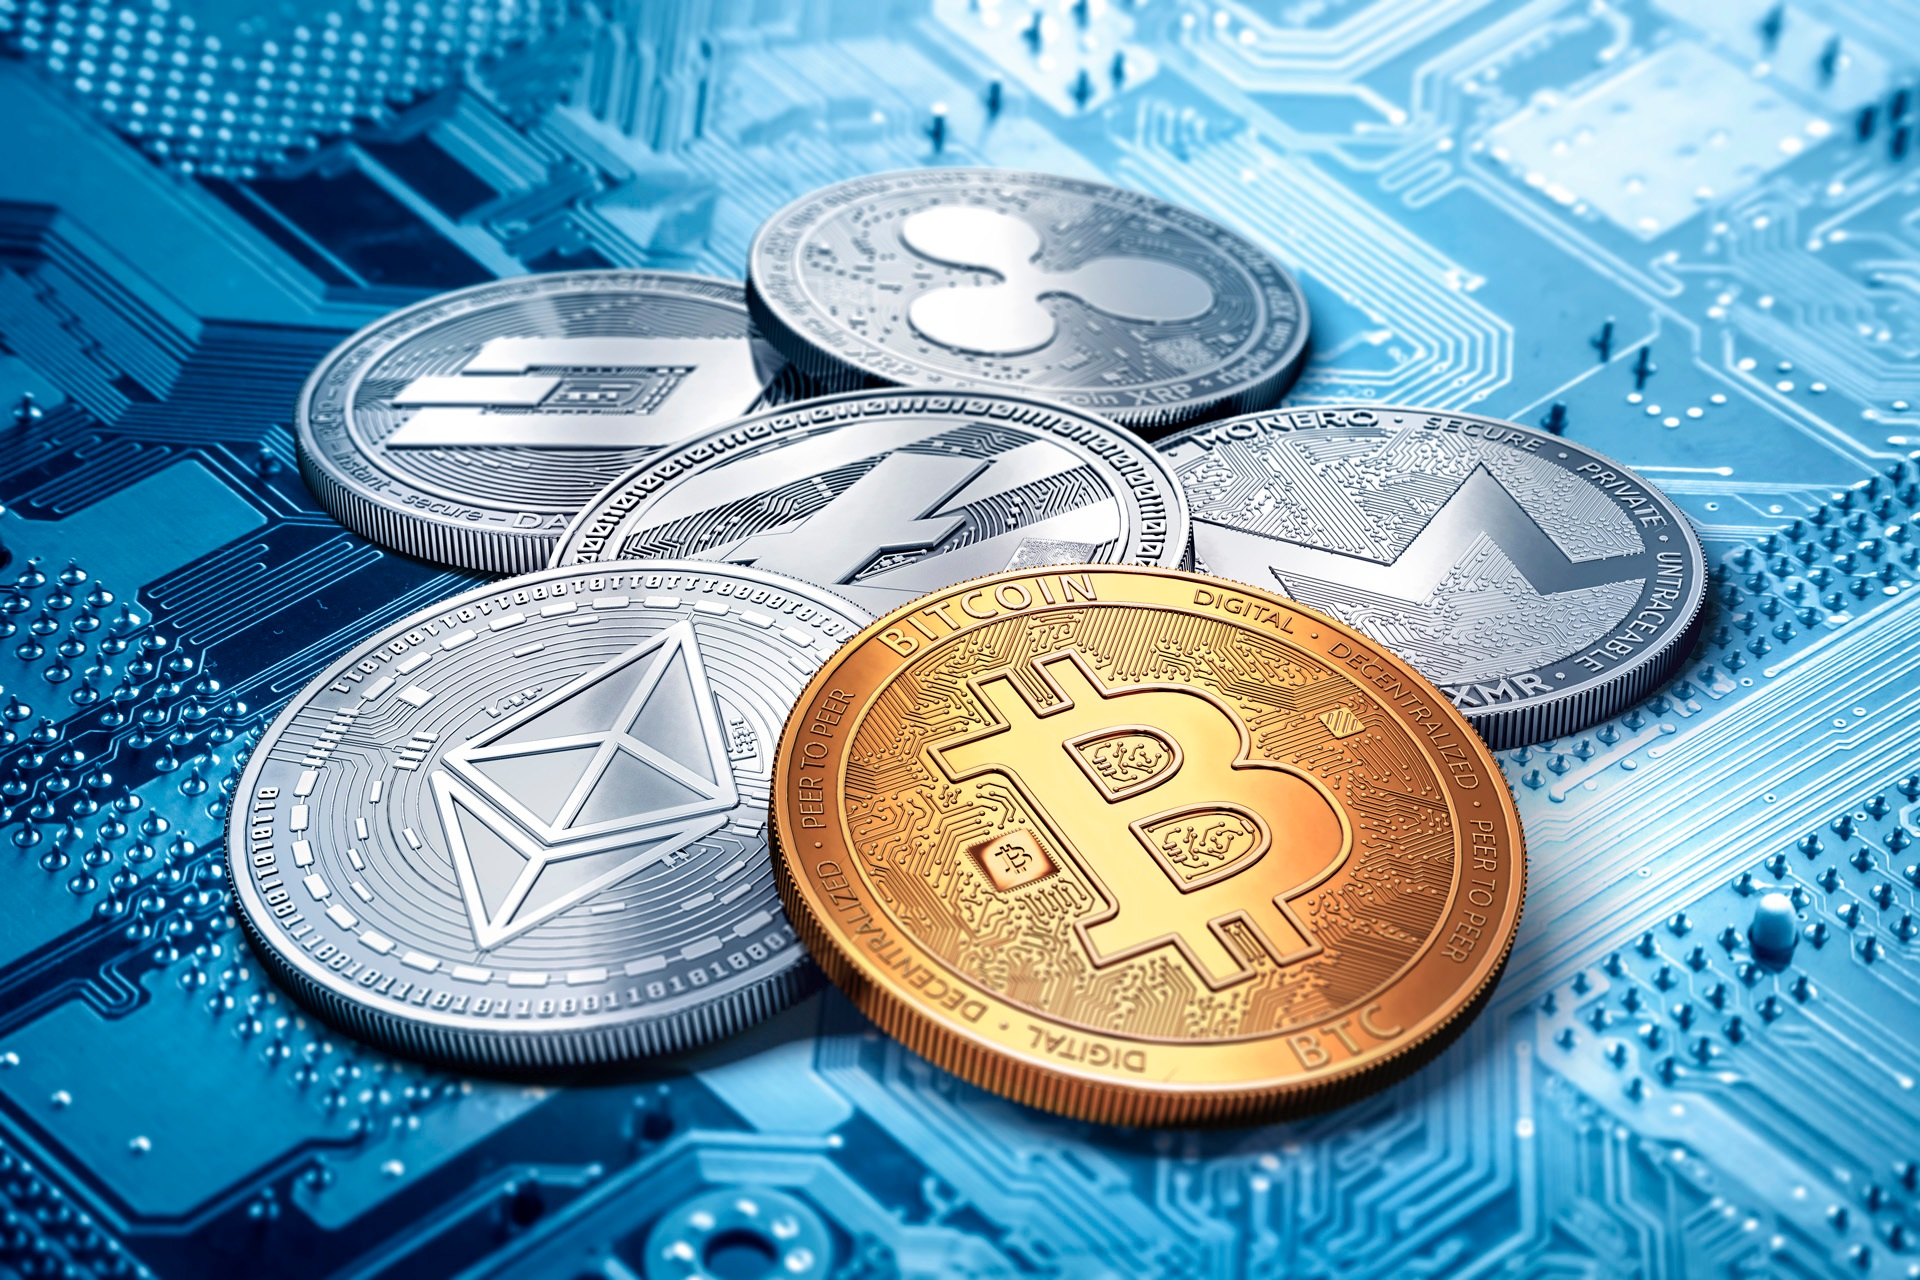 Crypto Market Has Several Benchmarks Showing a Fuller and More In-depth Picture than just Prices to USD